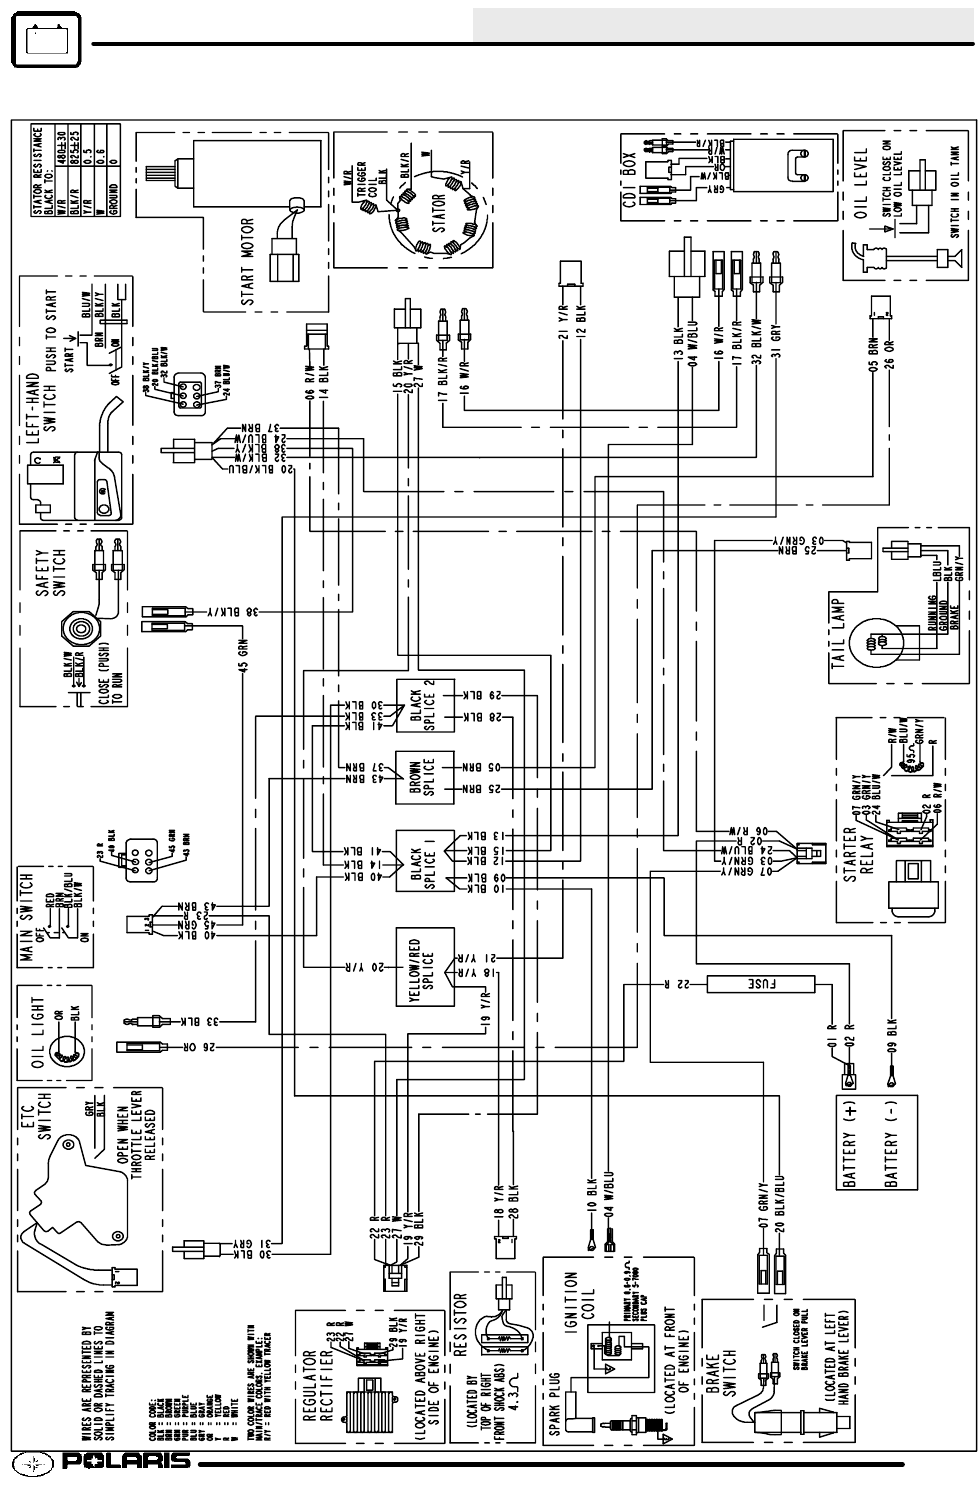 medium resolution of polaris electrical diagram schema wiring diagram polaris snowmobile wiring diagrams polaris electrical diagram wiring diagram home